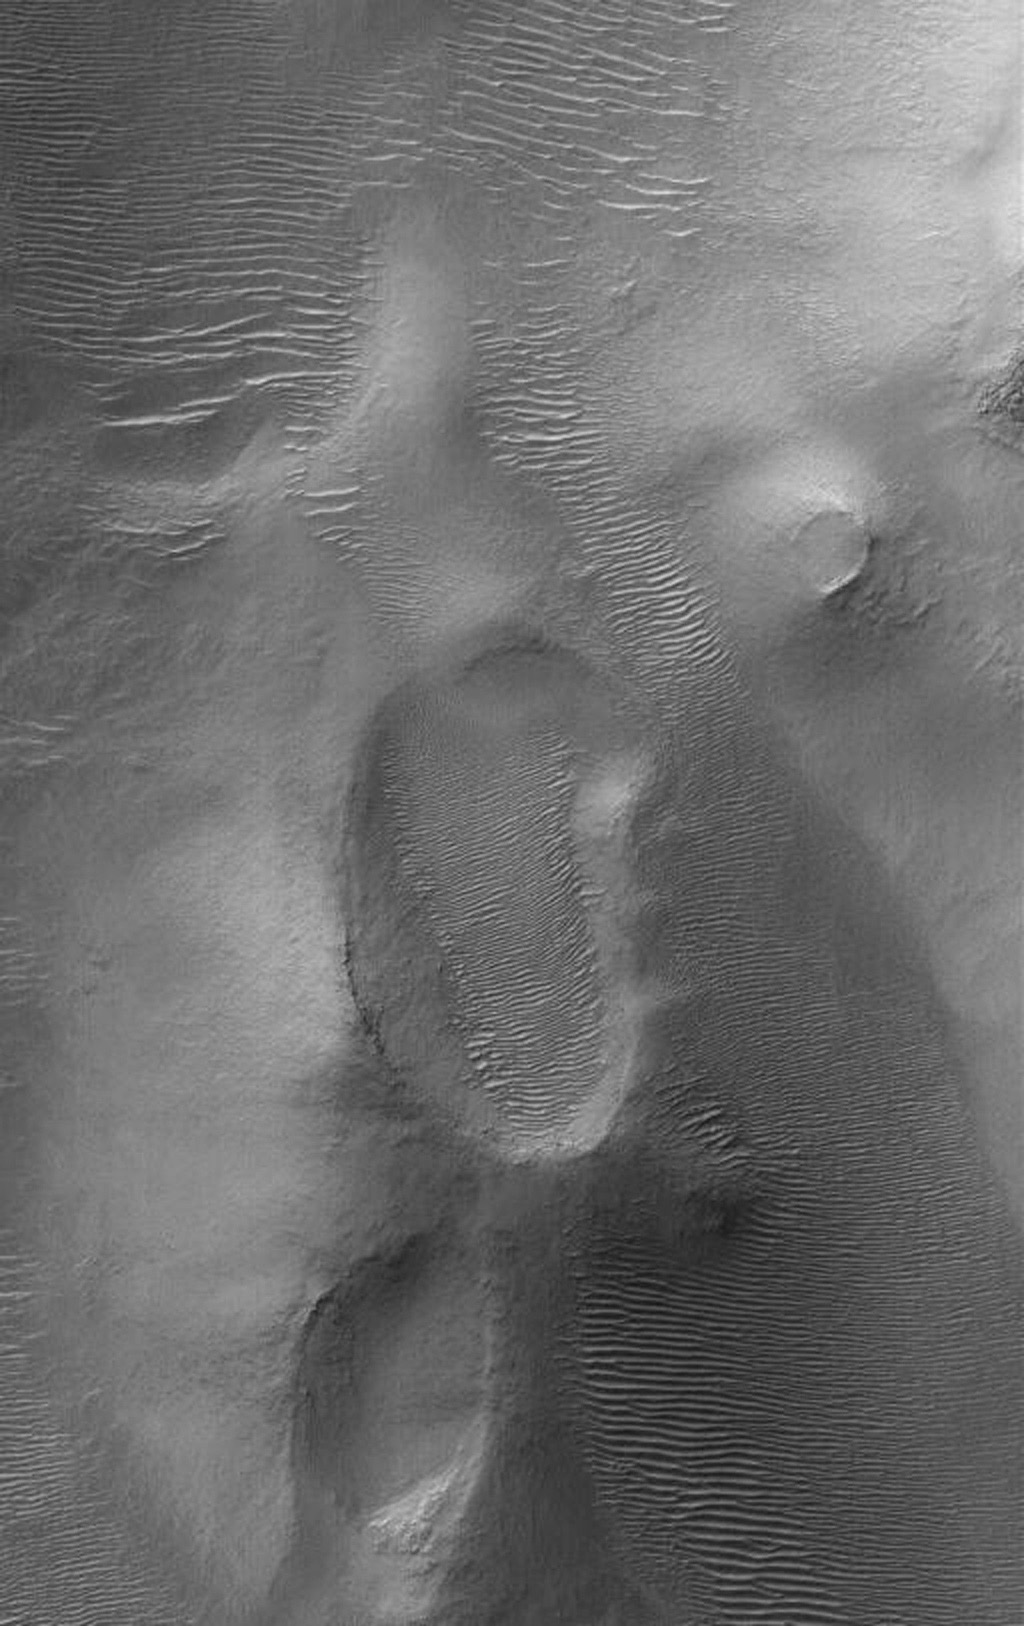 NASA's Mars Global Surveyor shows landforms, including large, windblown ripples, on the floor of the ancient, giant Argyre impact basin on Mars.